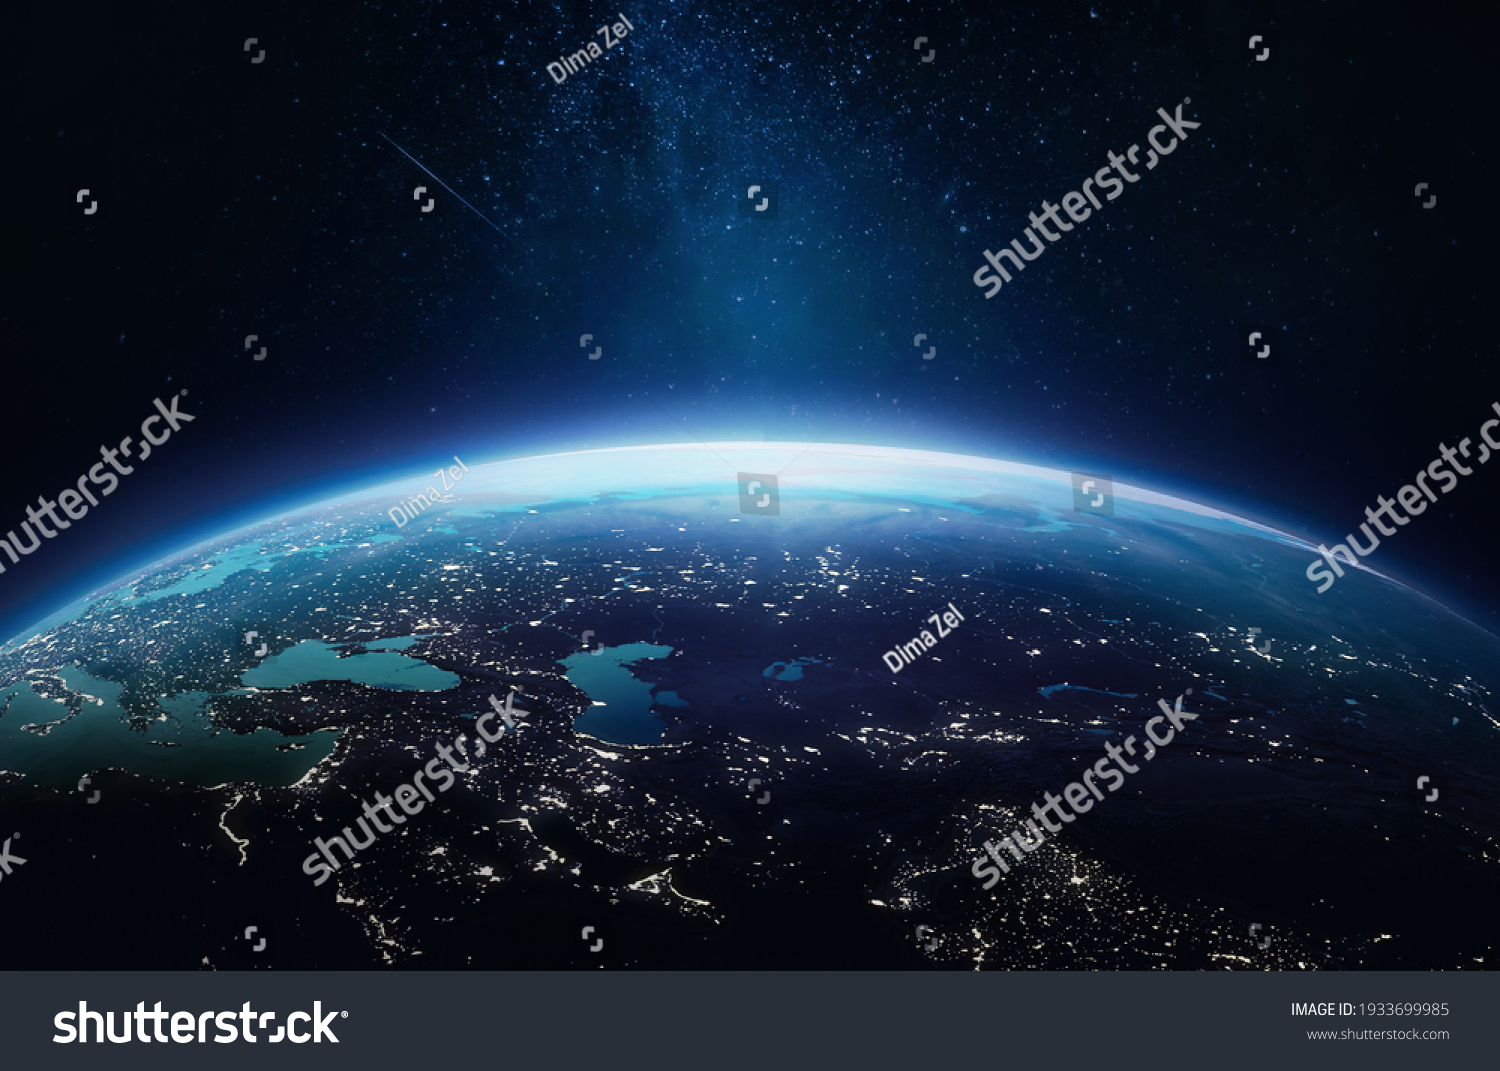 Surface of Earth planet in deep space. Outer dark space wallpaper. Night on planet with cities lights. View from orbit. Elements of this image furnished by NASA #1933699985